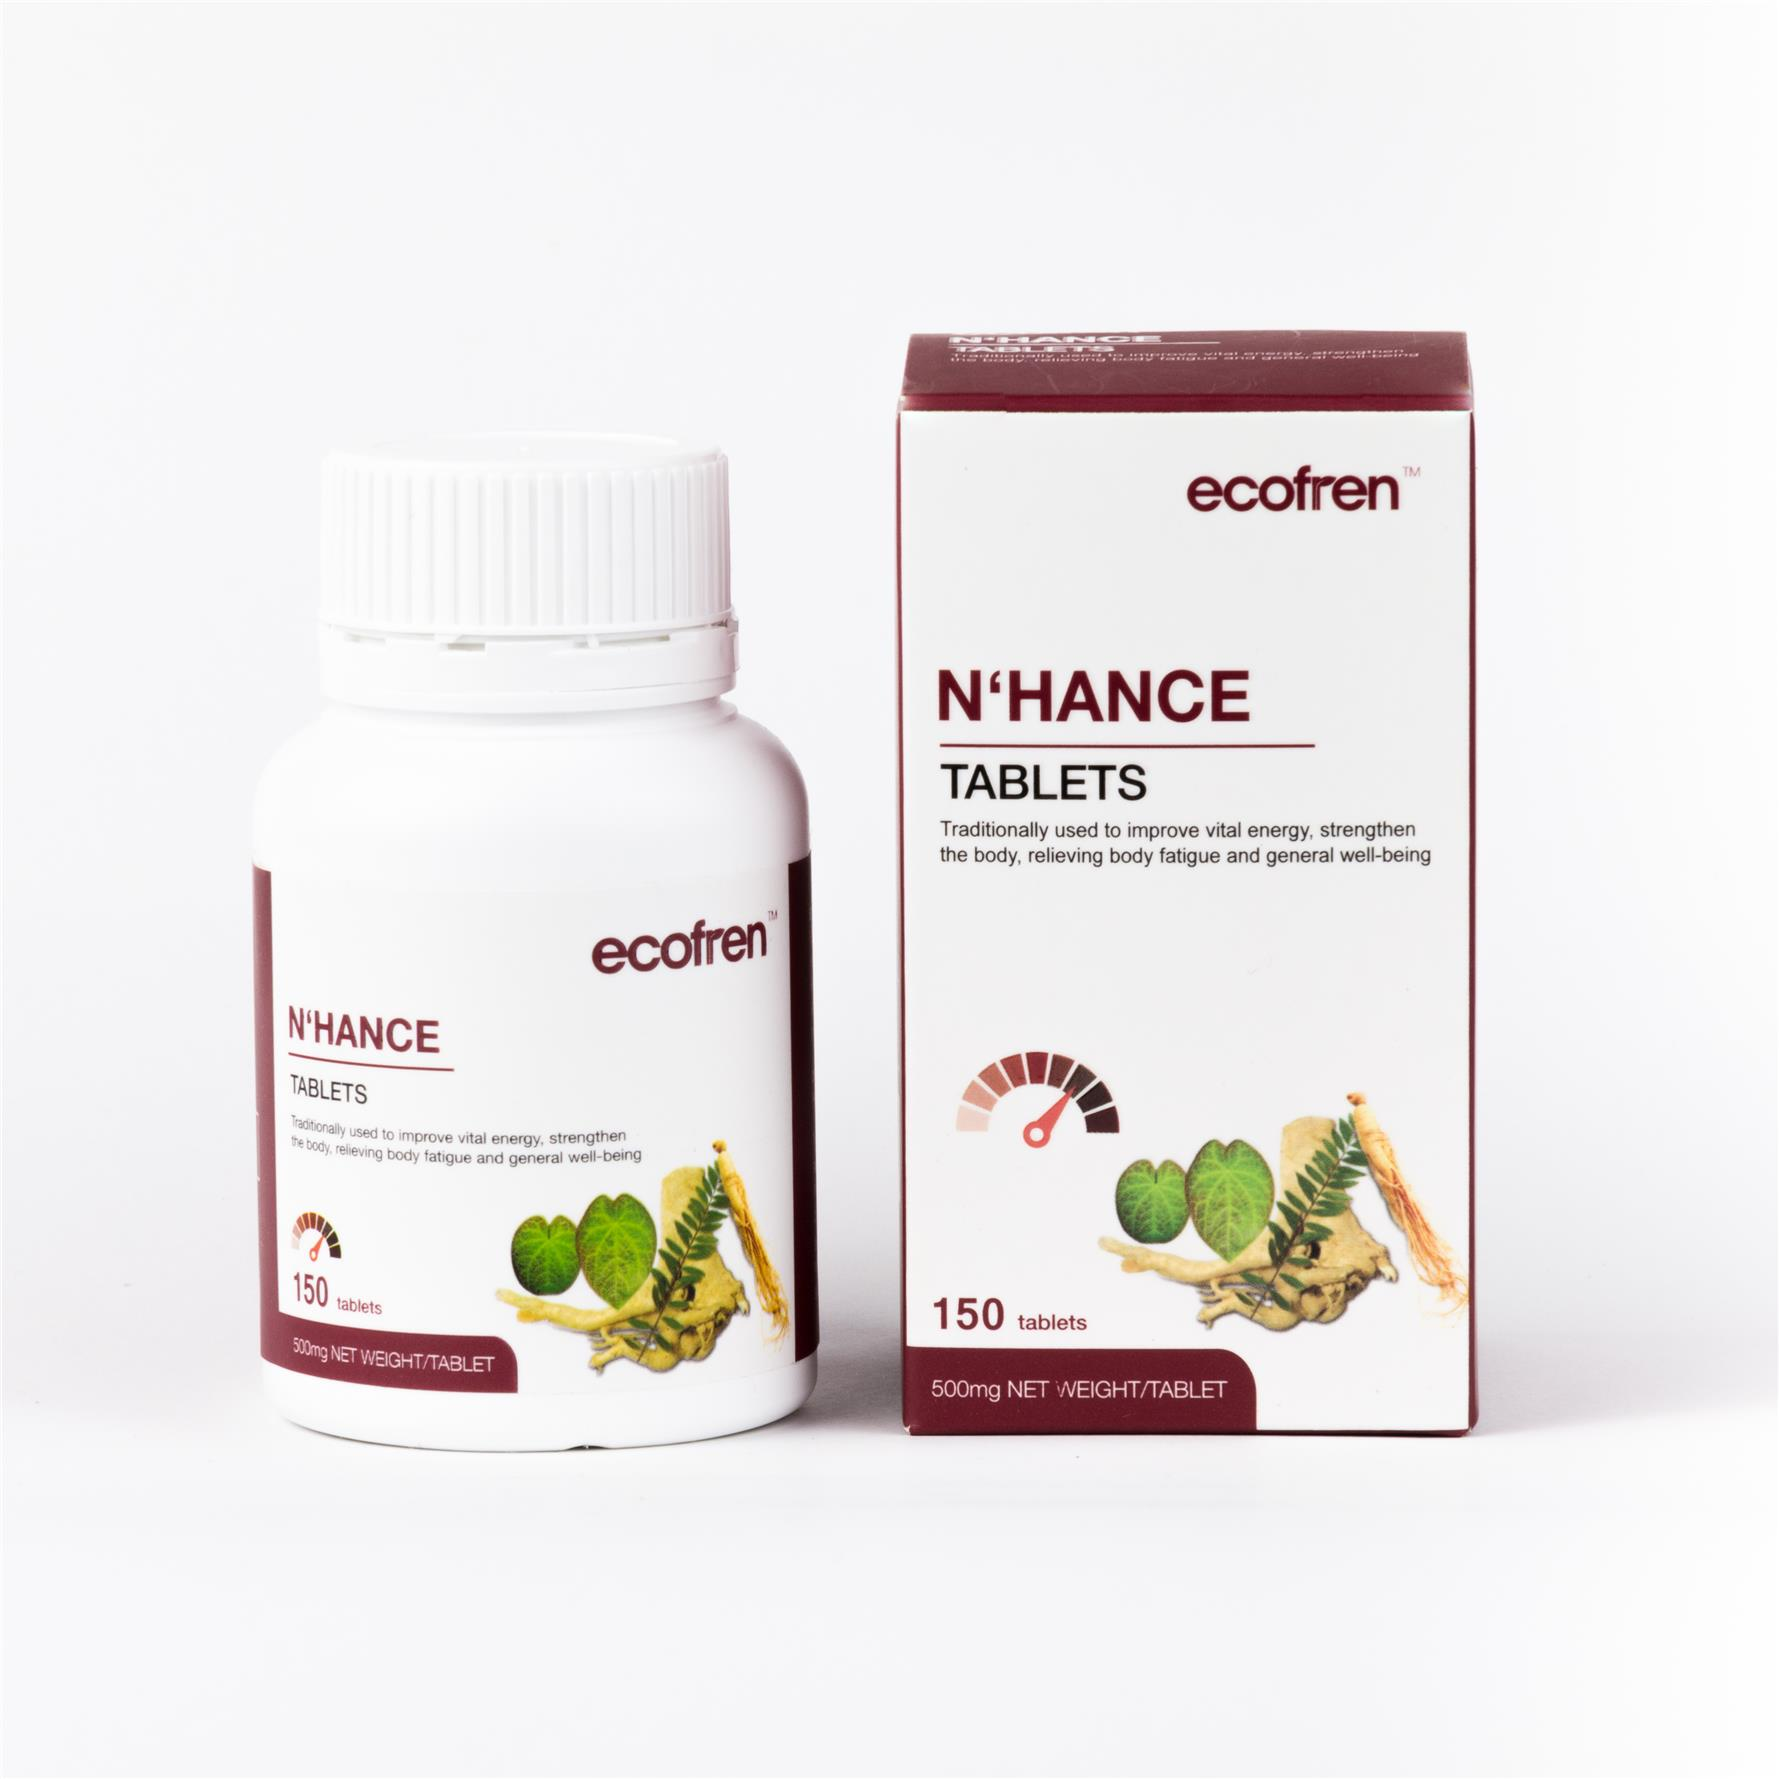 Ecofren N'hance Tablet 150's for Men, Extra Strength & Endurance